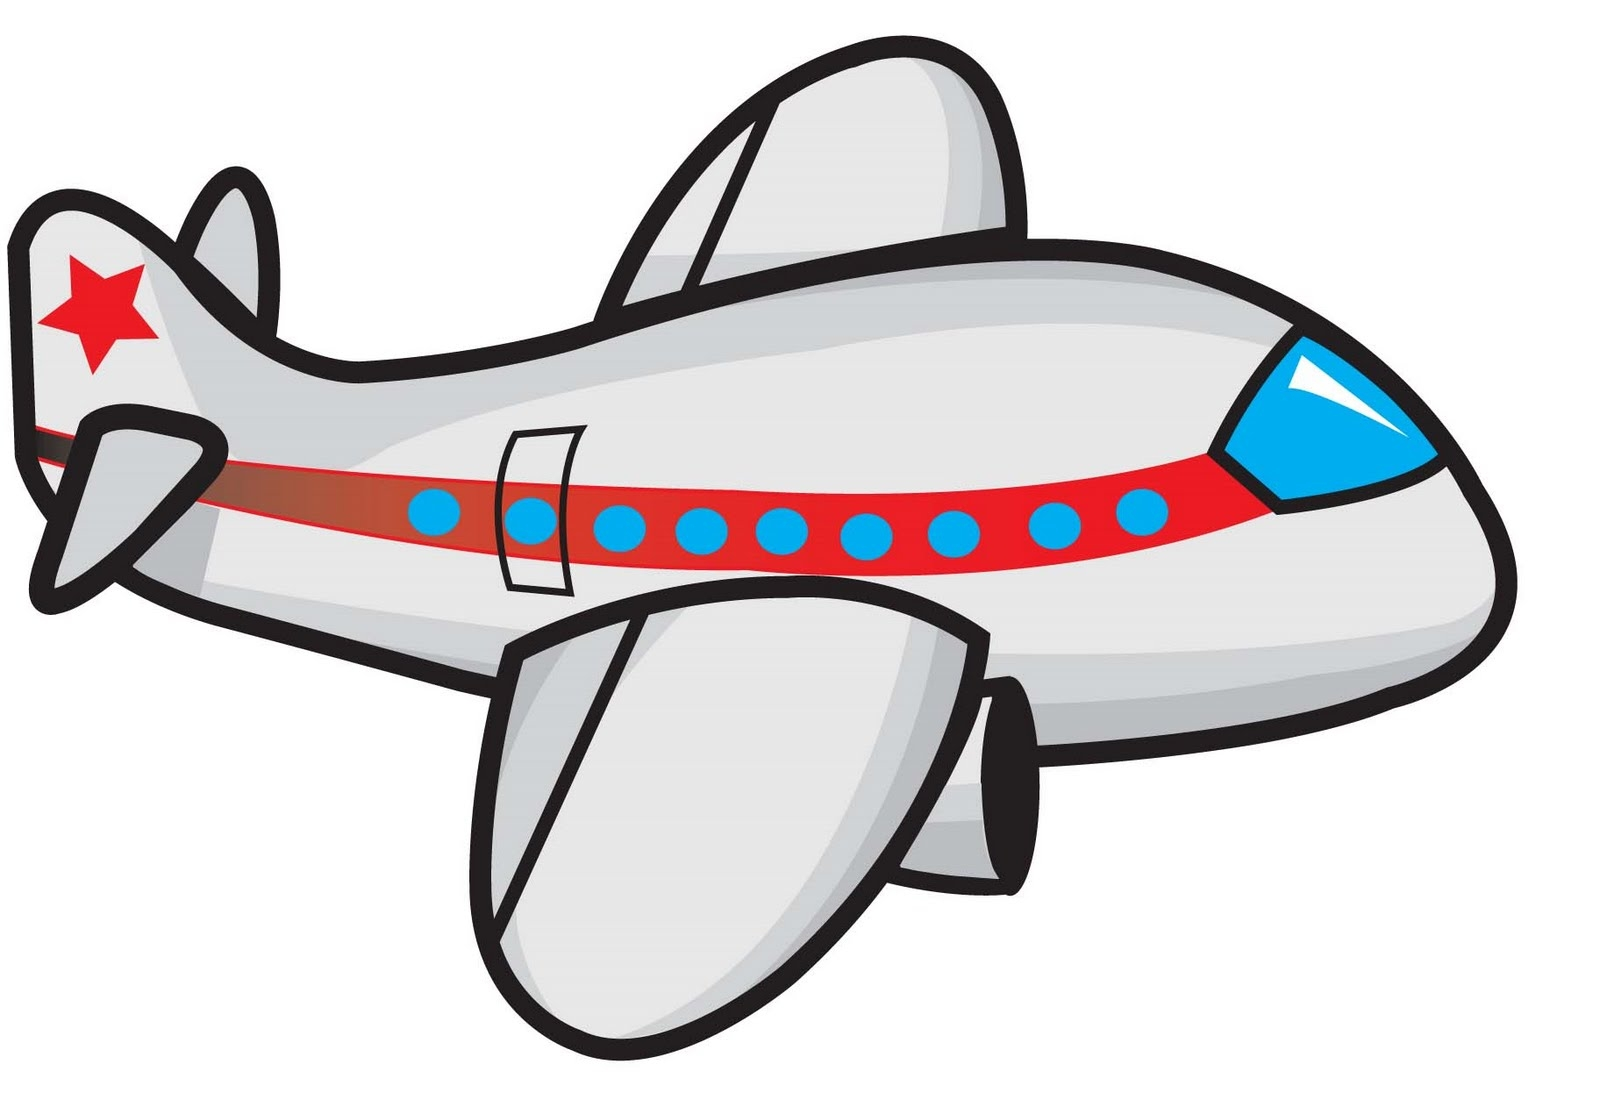 1600x1100 Collection Of Plane Takeoff Clipart High Quality, Free